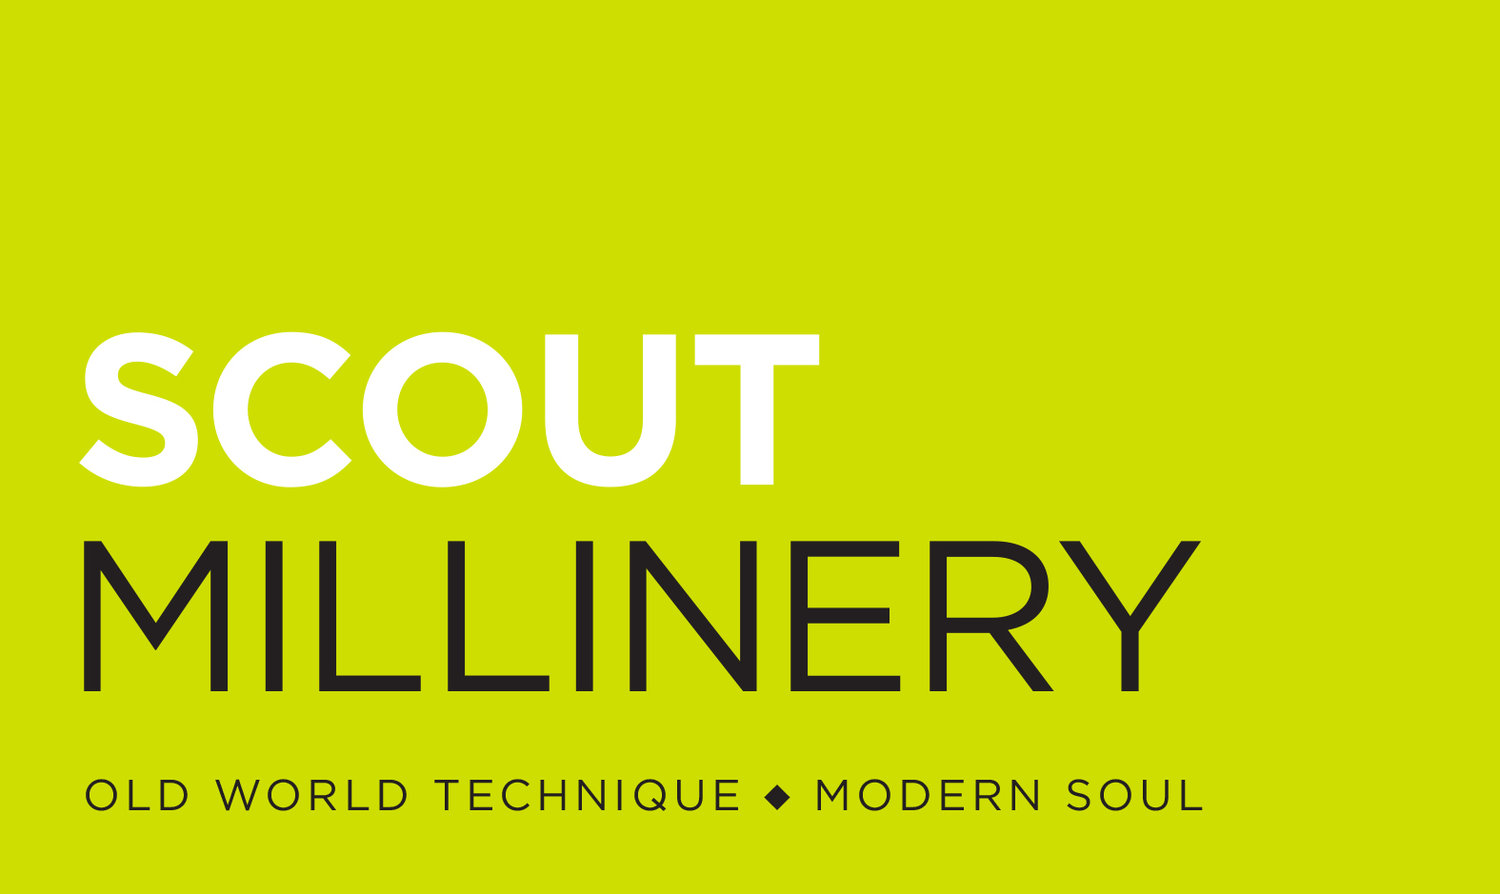 Scout Millinery